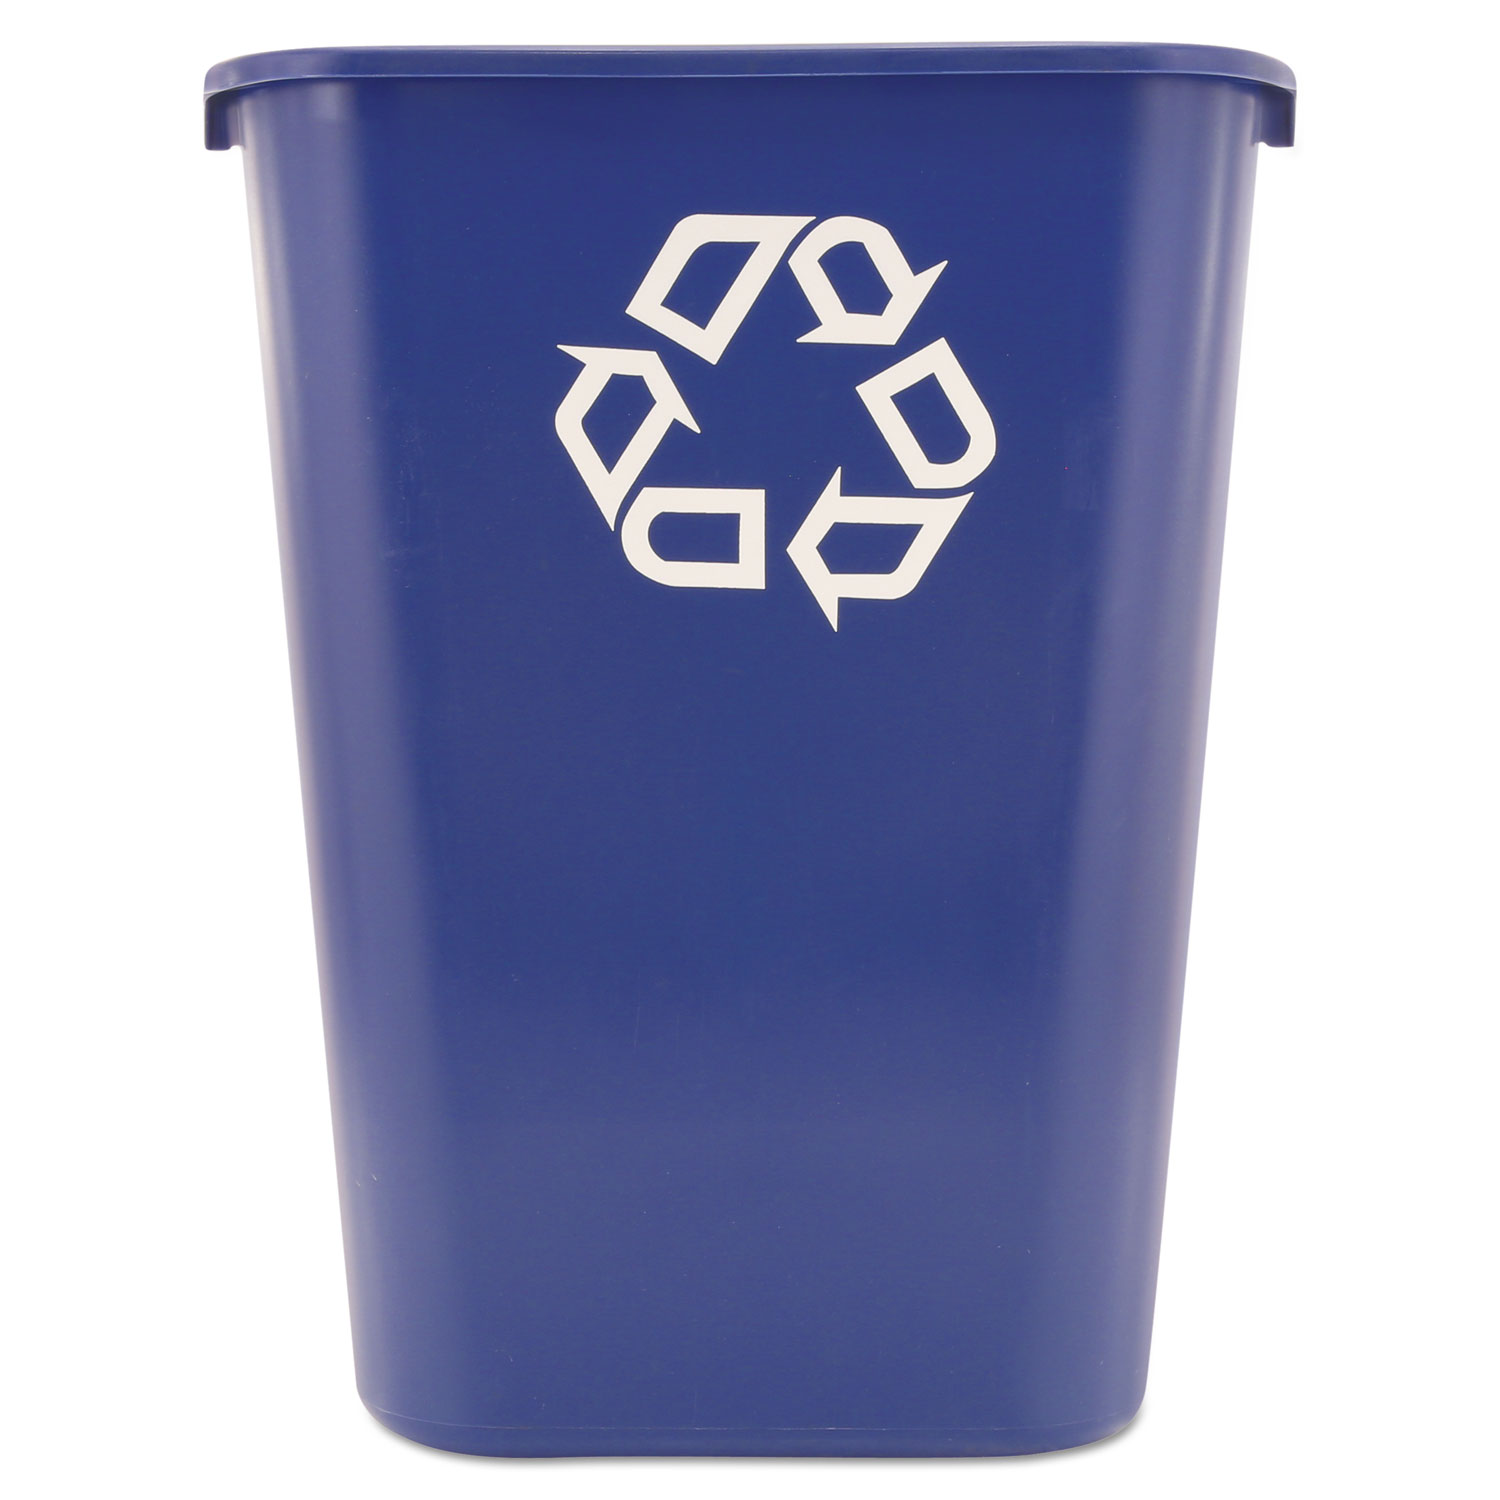 Rubbermaid Commercial Small Deskside Recycling Container one recycling container Rectangular Blue Plastic by Rubbermaid Commercial 13 5//8 qt